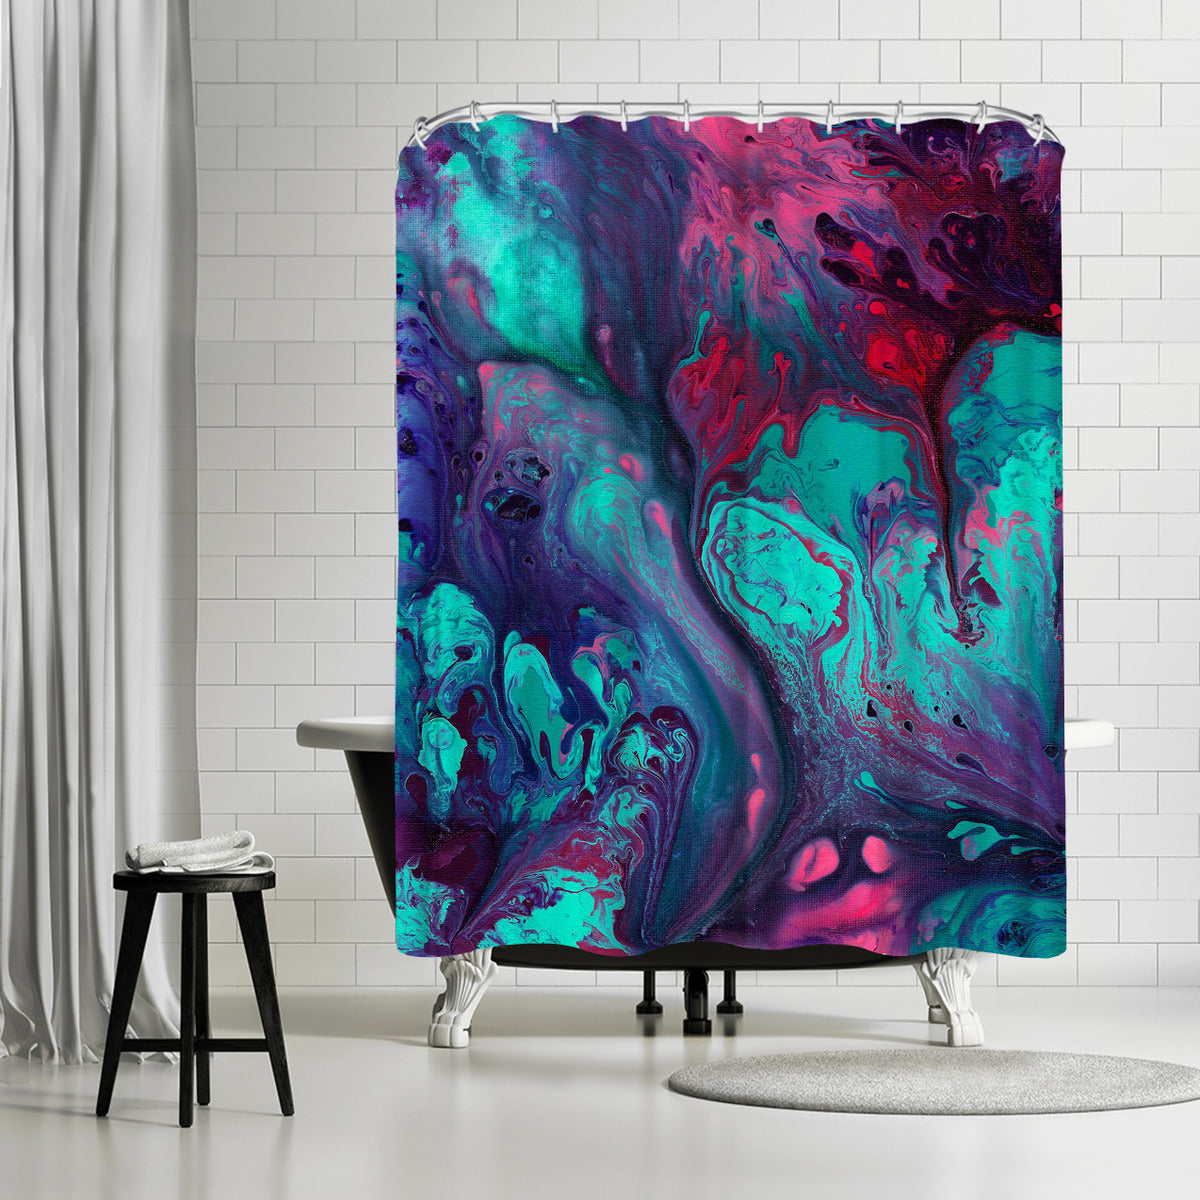 Enchantment by Destiny Womack Shower Curtain -  - Americanflat